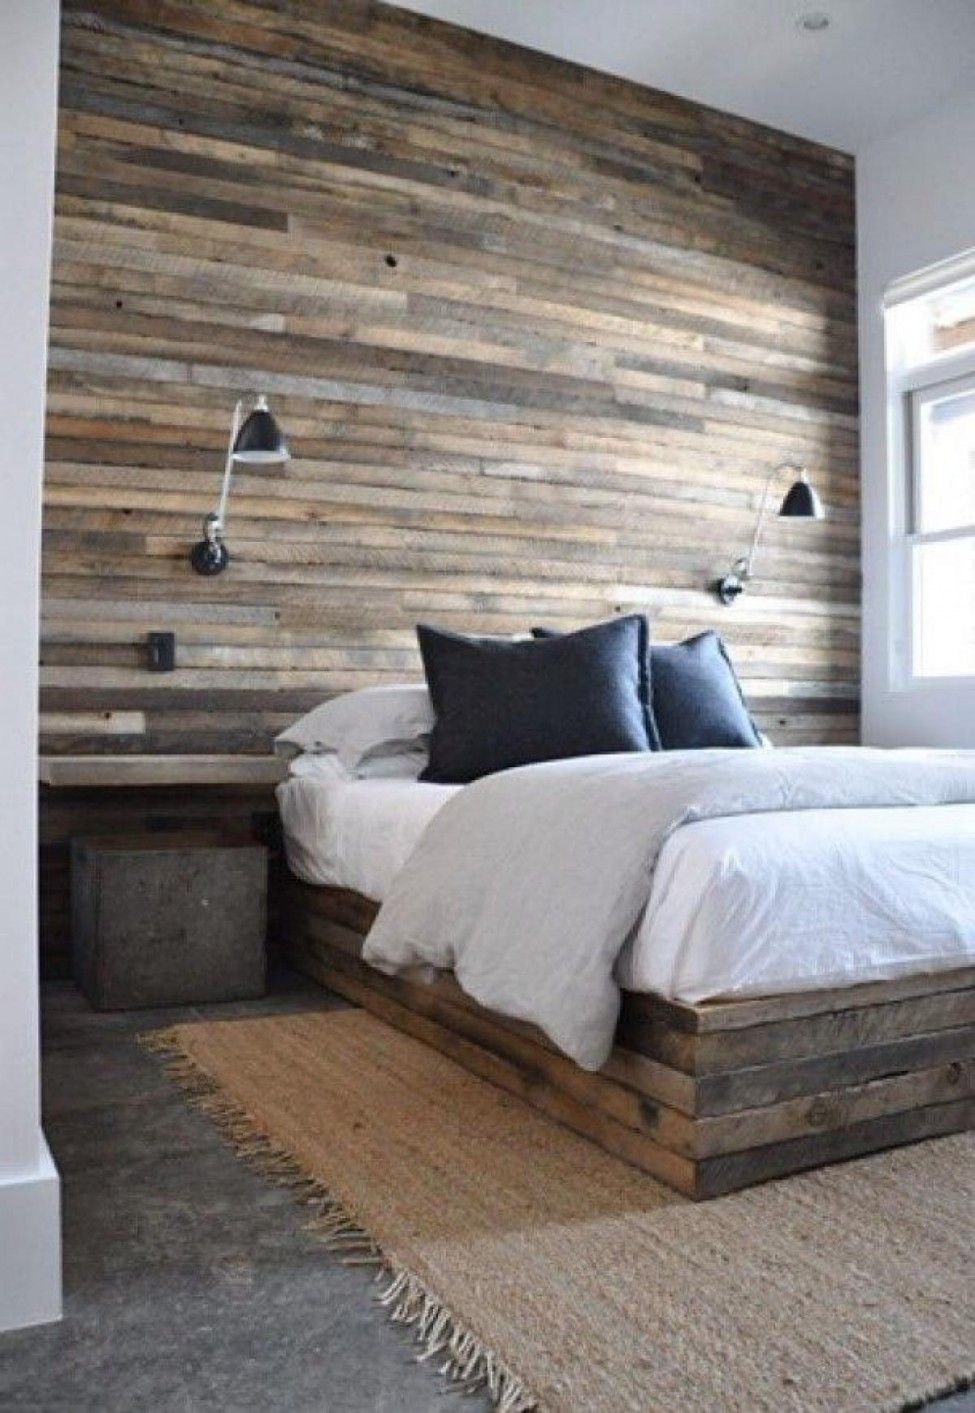 Modern And Traditional Design Ideas Bedroom Design Ideas With Wooden Interior Materials Al Wood Walls Bedroom Rustic Master Bedroom Decor Rustic Master Bedroom